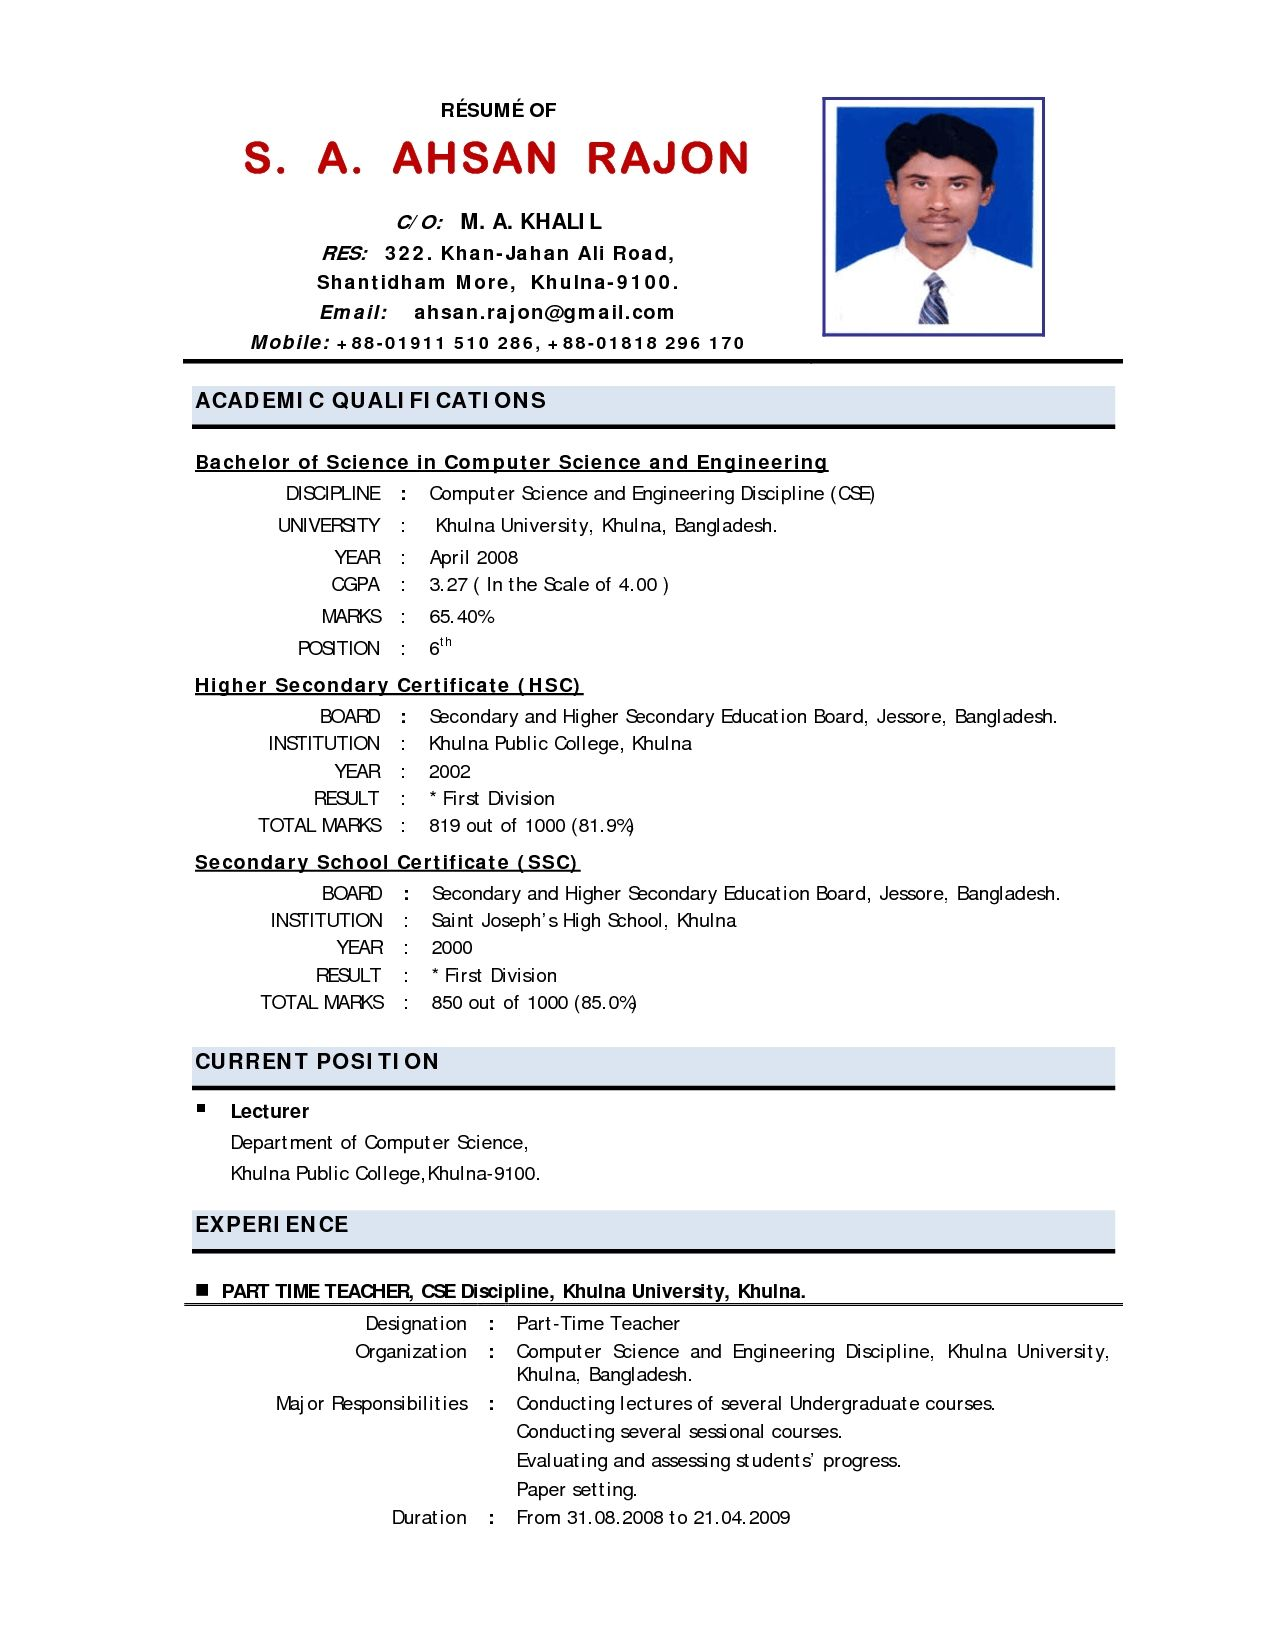 1775b2227361d669f2c908152b455069 Teacher Resume In Indian Format on teacher resume model, teacher resume title, teacher resume action words, teacher interview tips, teacher resume tips, teacher resume pdf, teacher resume writing, education cover letter format, teacher assistant resume no experience, teacher cover letter, teacher resume downloadable, teacher resume references, teacher resume artist, teacher resume description, teacher assistant resume sample, teacher presentation, teacher resume design, teacher resume help, teacher resume length, teacher resume keywords,